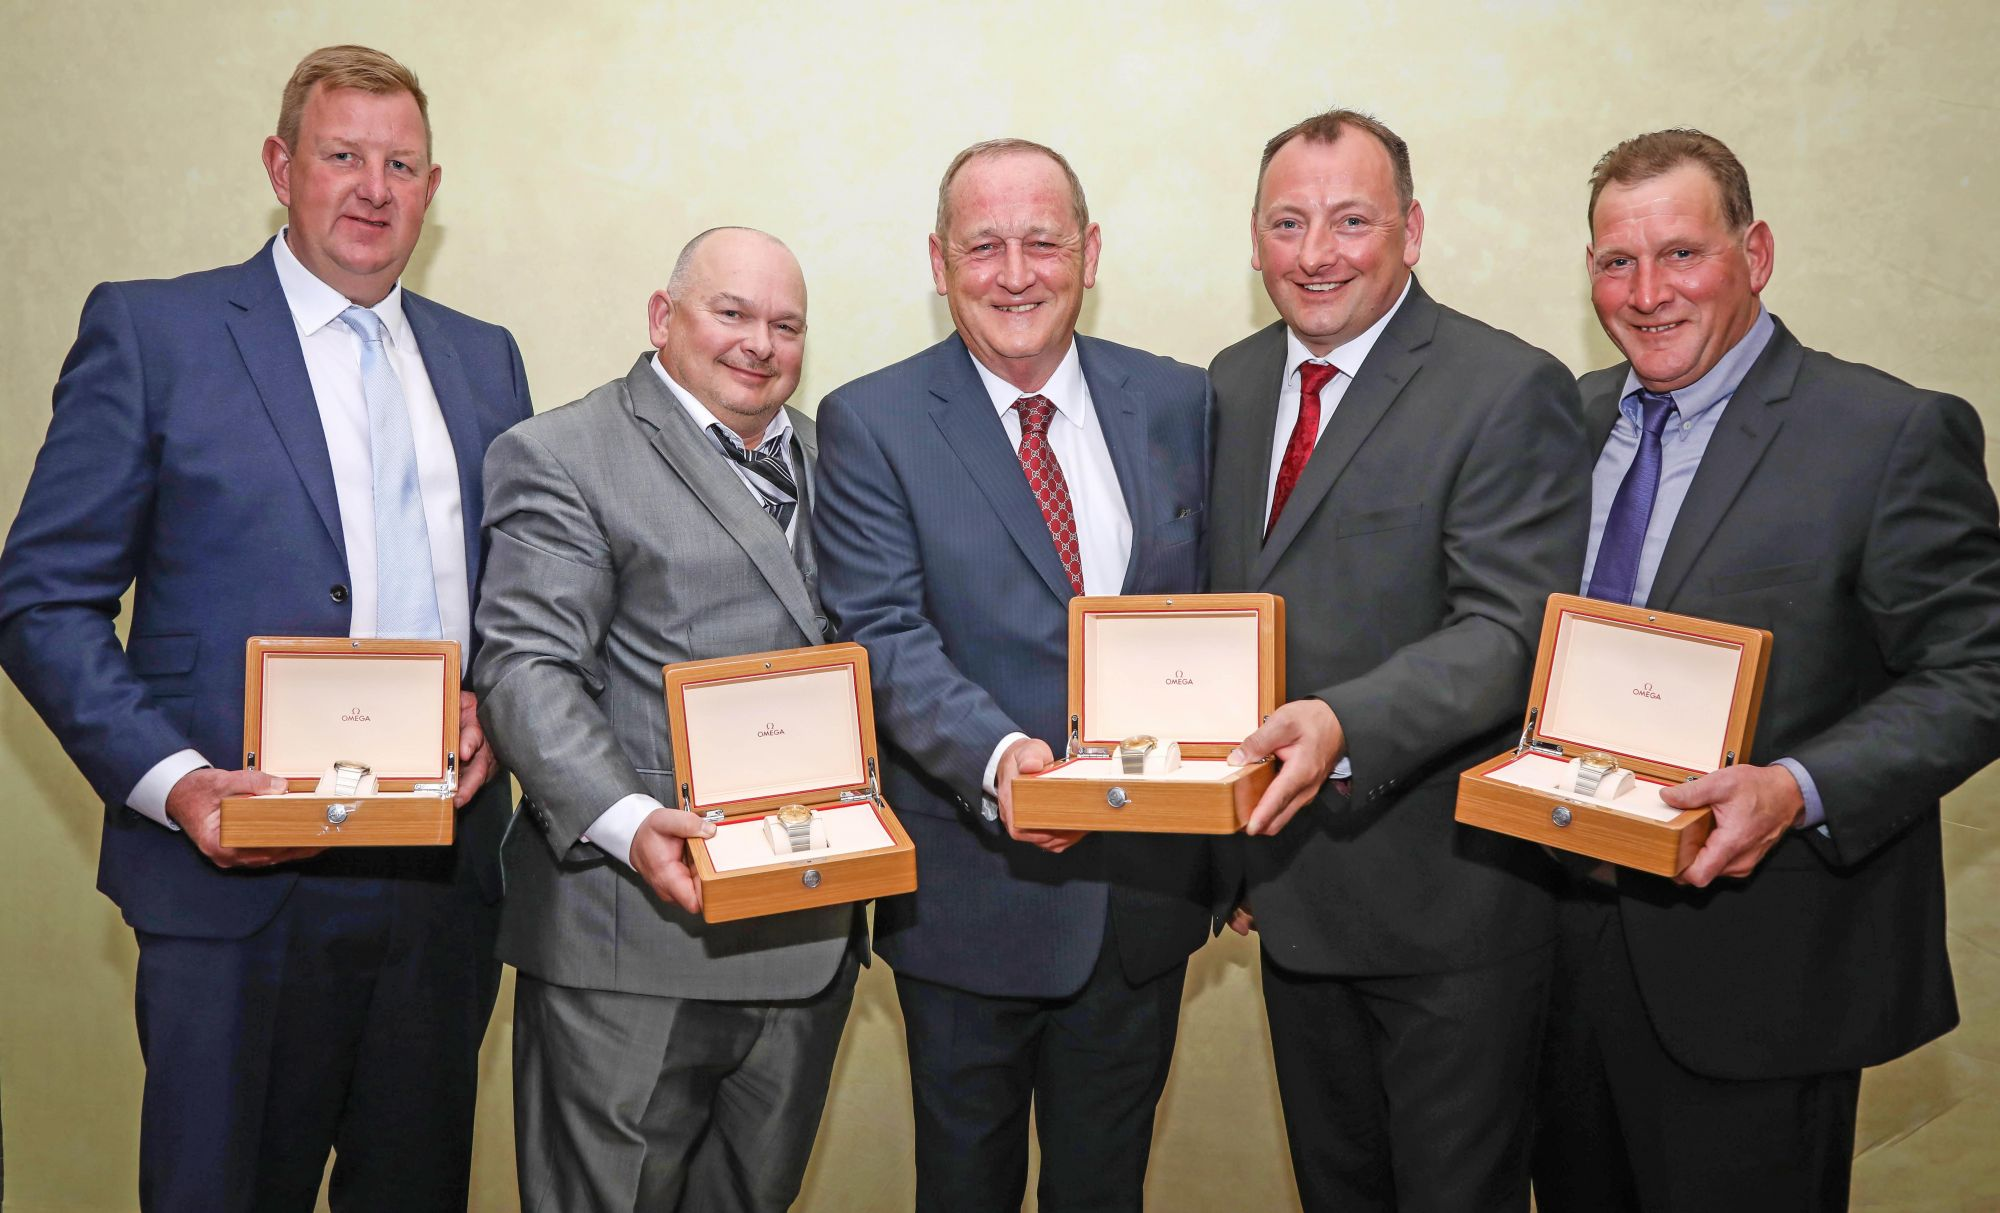 Patrick Trant, Chairman of multi-disciplinary contractor Trant Engineering, centre, with recipients of 25-year service awards. From left, Darren Bishop, Pete Boyt, Patrick, Darren Milam and Tom Lee. They bring the total number of staff with similar awards to 136 at award-winning Trant Engineering.